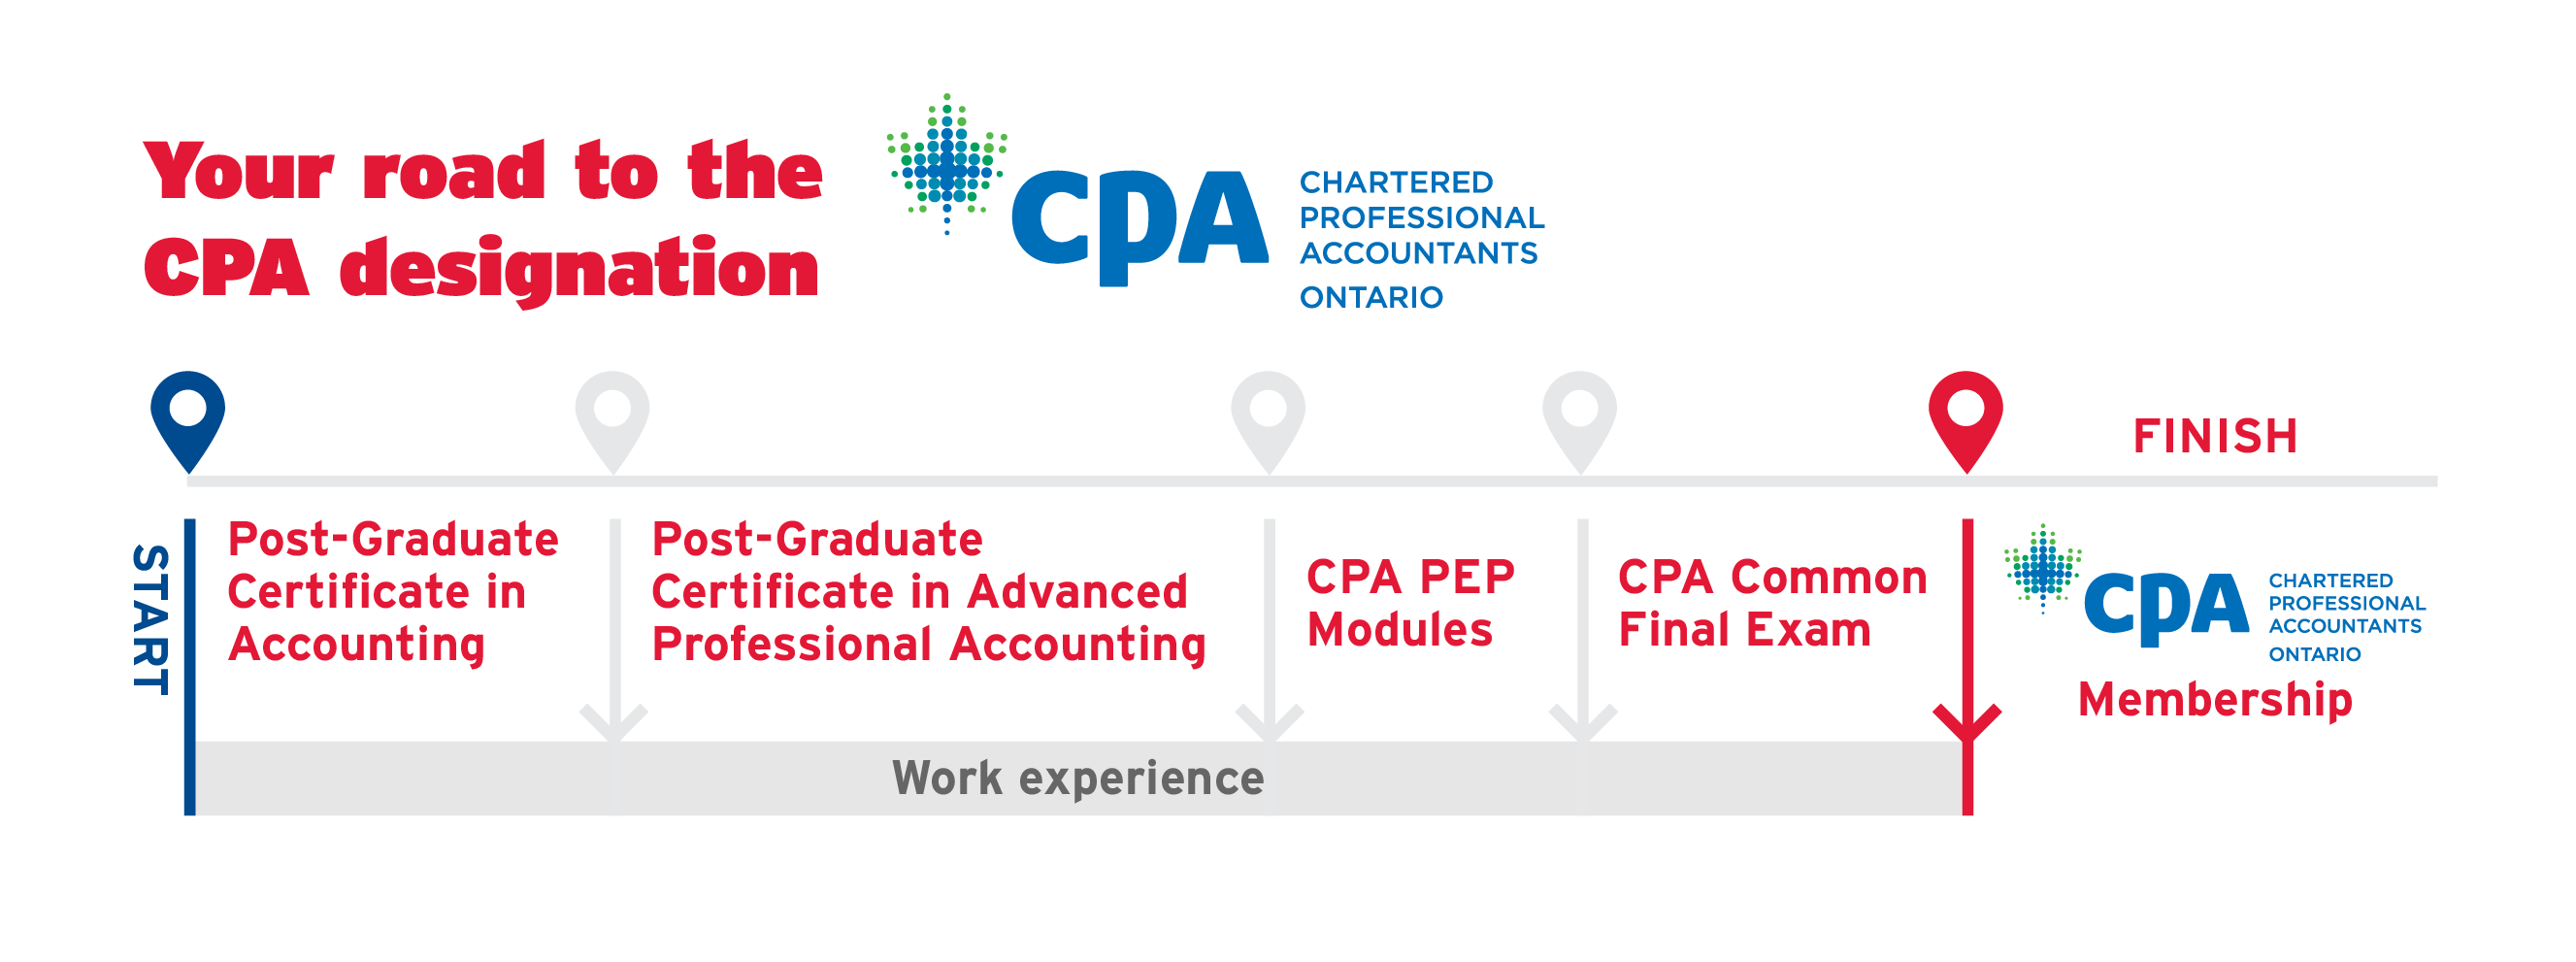 Chartered Accountant Cpa Post Graduate Certificate In Accounting School Of Continuing Studies